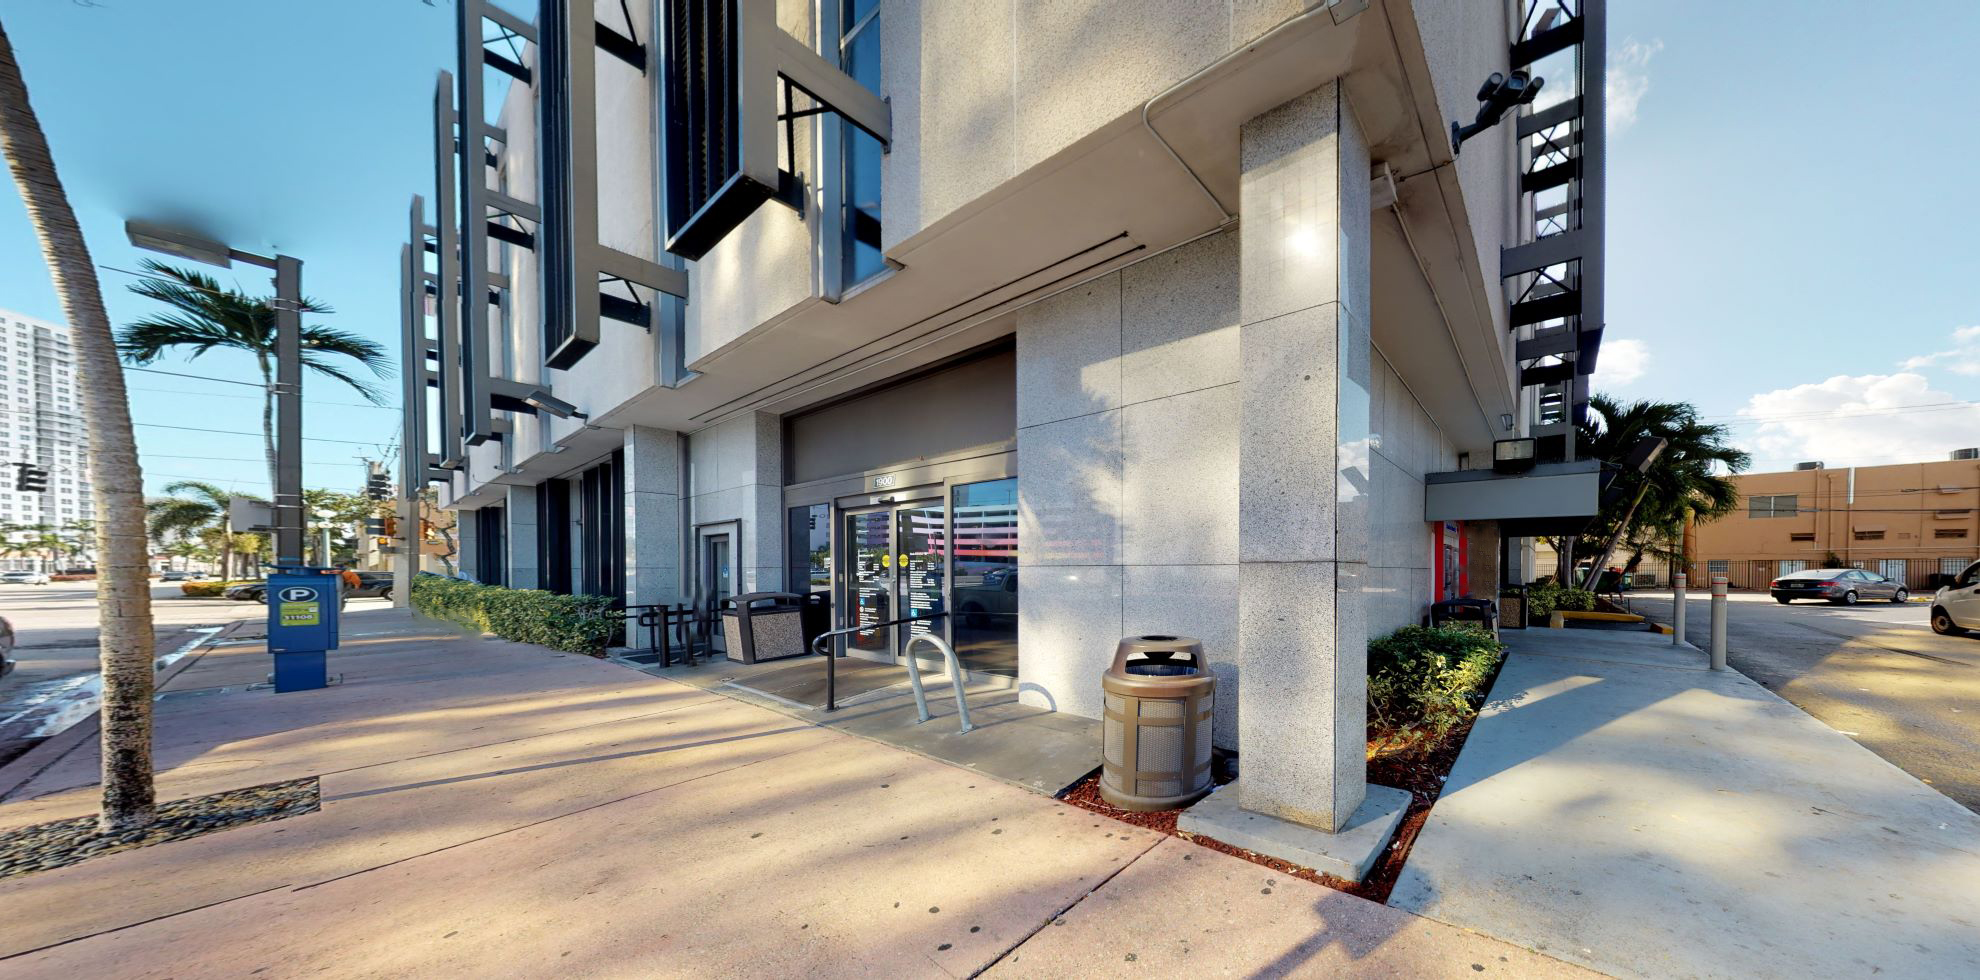 Bank of America financial center with drive-thru ATM | 1900 Tyler St, Hollywood, FL 33020